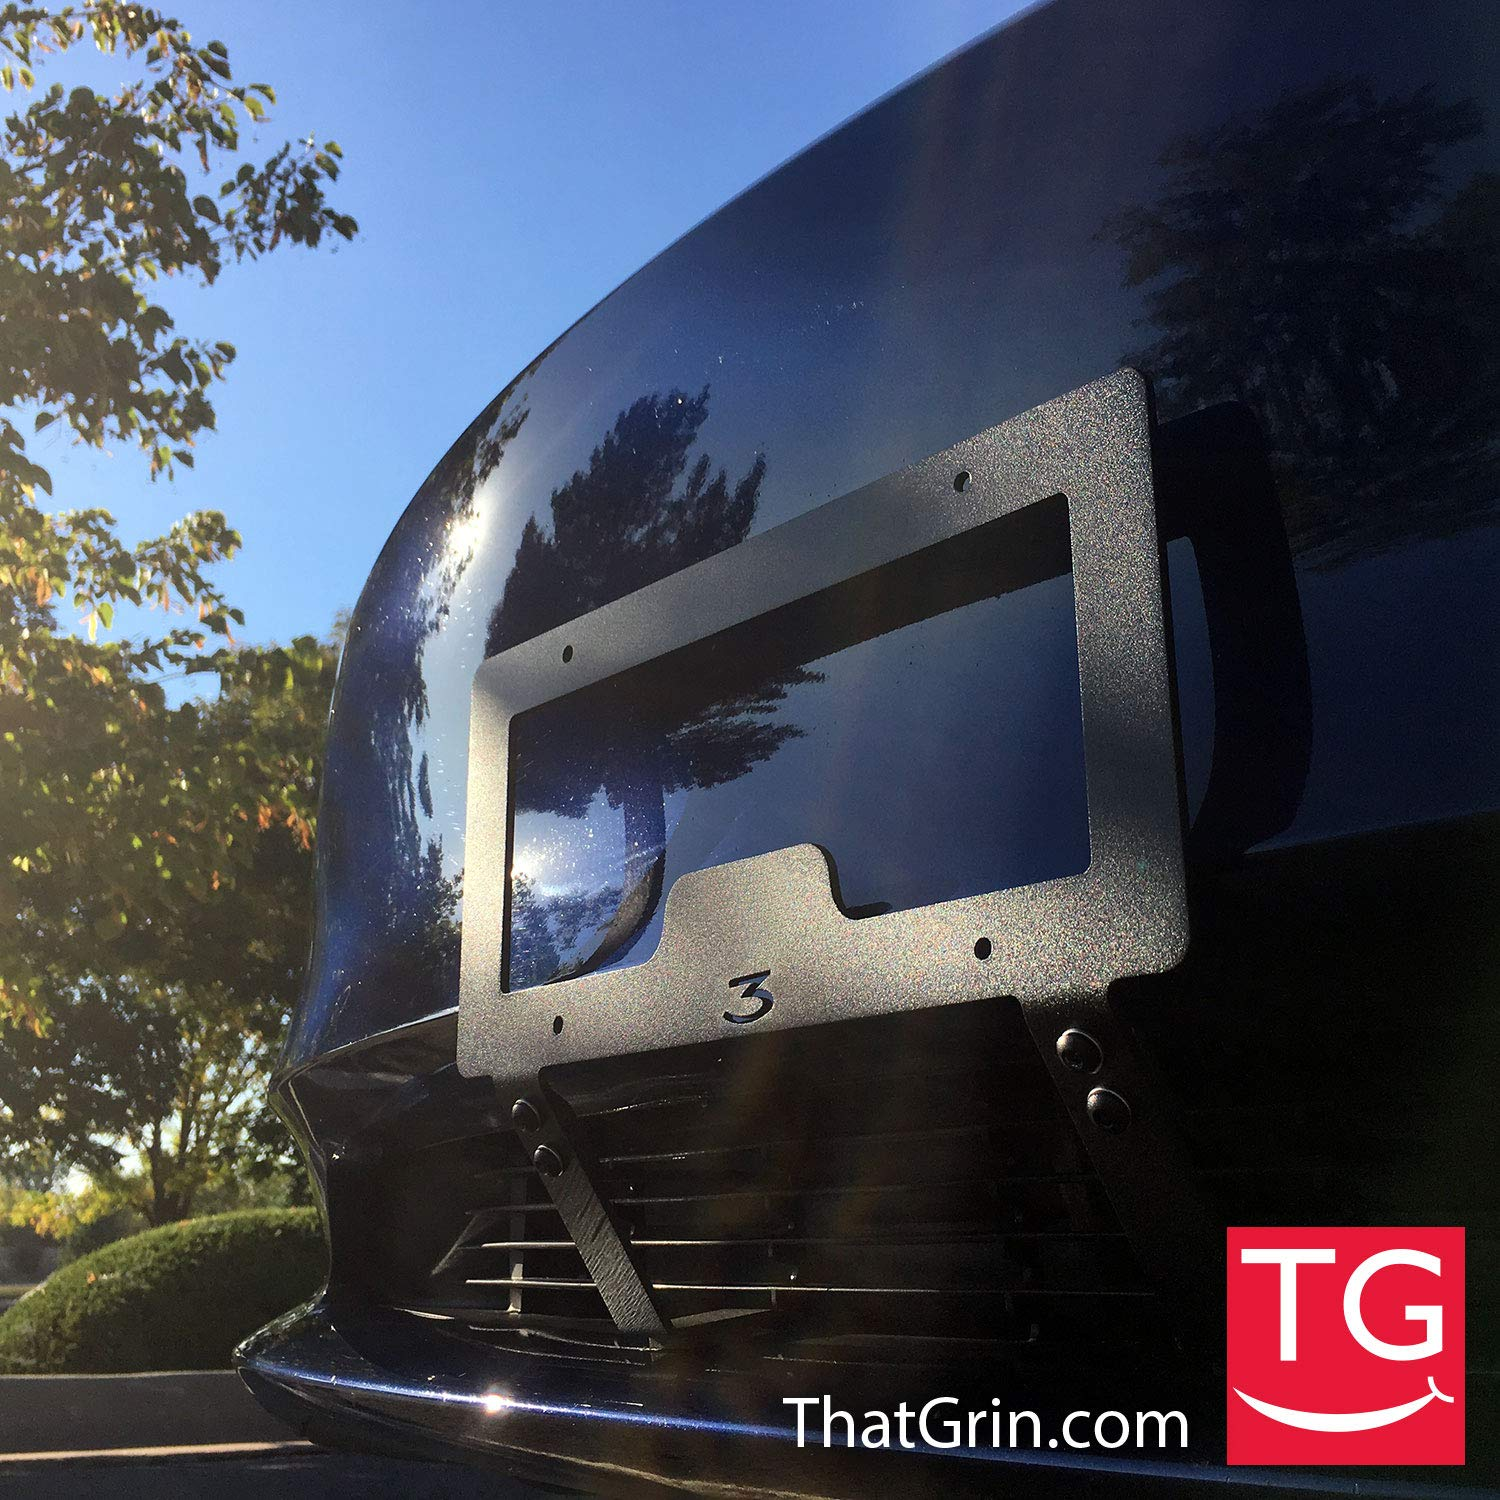 ThatGrin LLC Genuine Slipstream Bracket for Tesla Model 3 - USA Made Version (Patent Pending) - NO Drilling, NO Holes, NO Adhesives Front License Plate Mounting Holder by TheTes Grin LLC (Image #8)